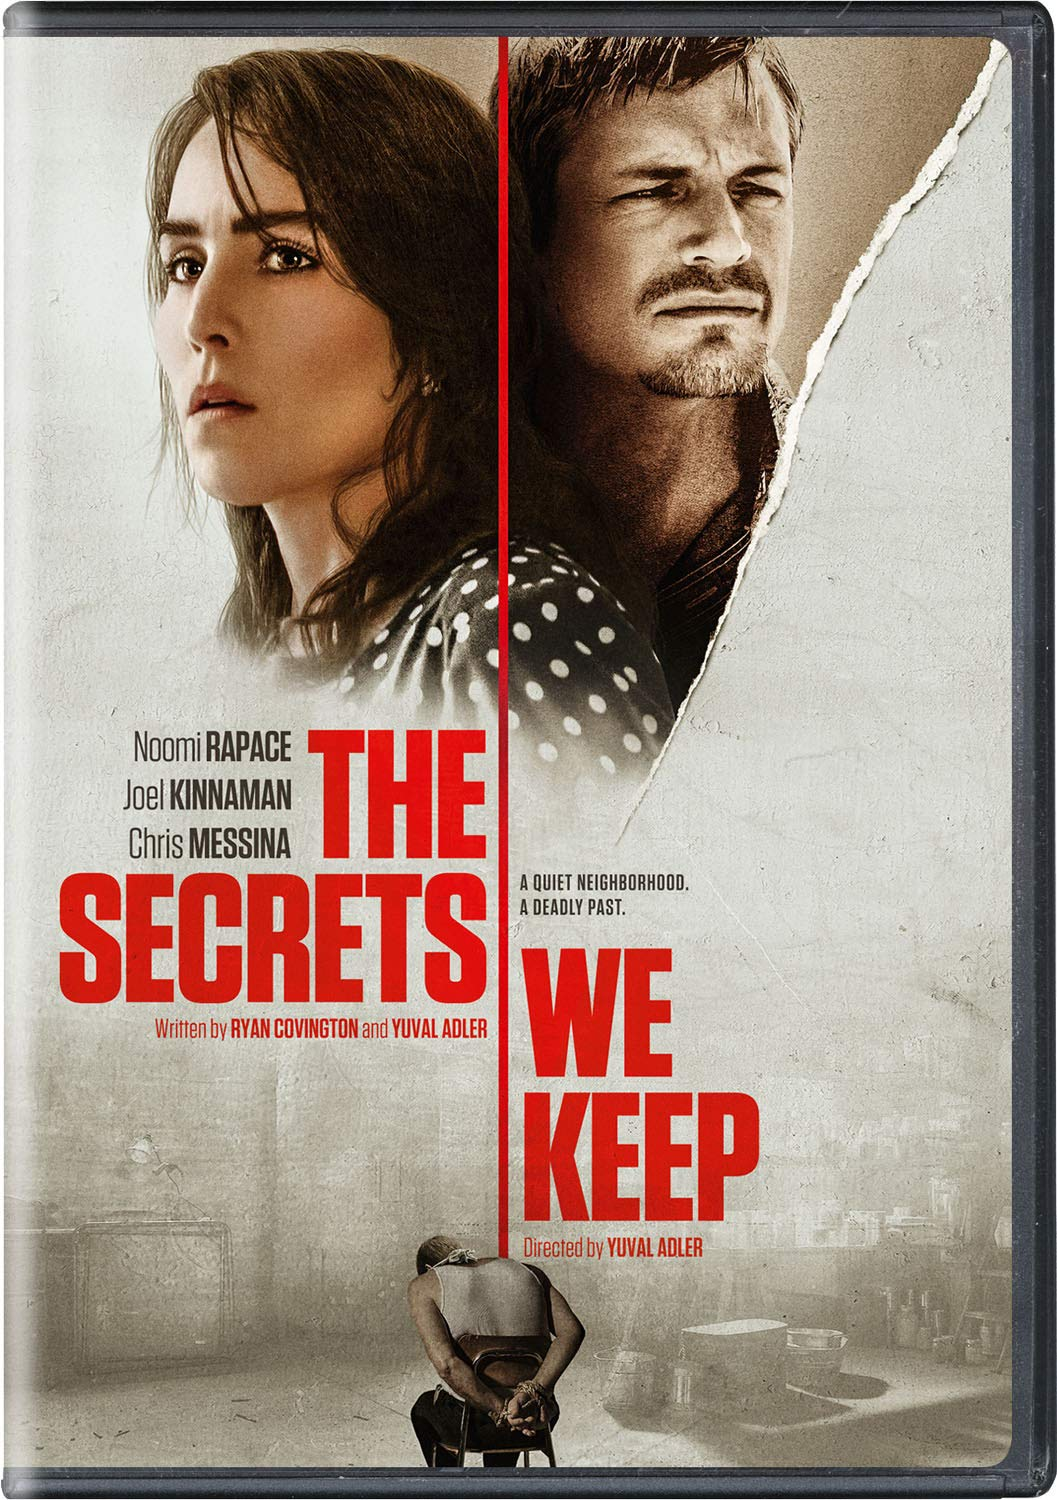 Book Cover: The secrets we keep